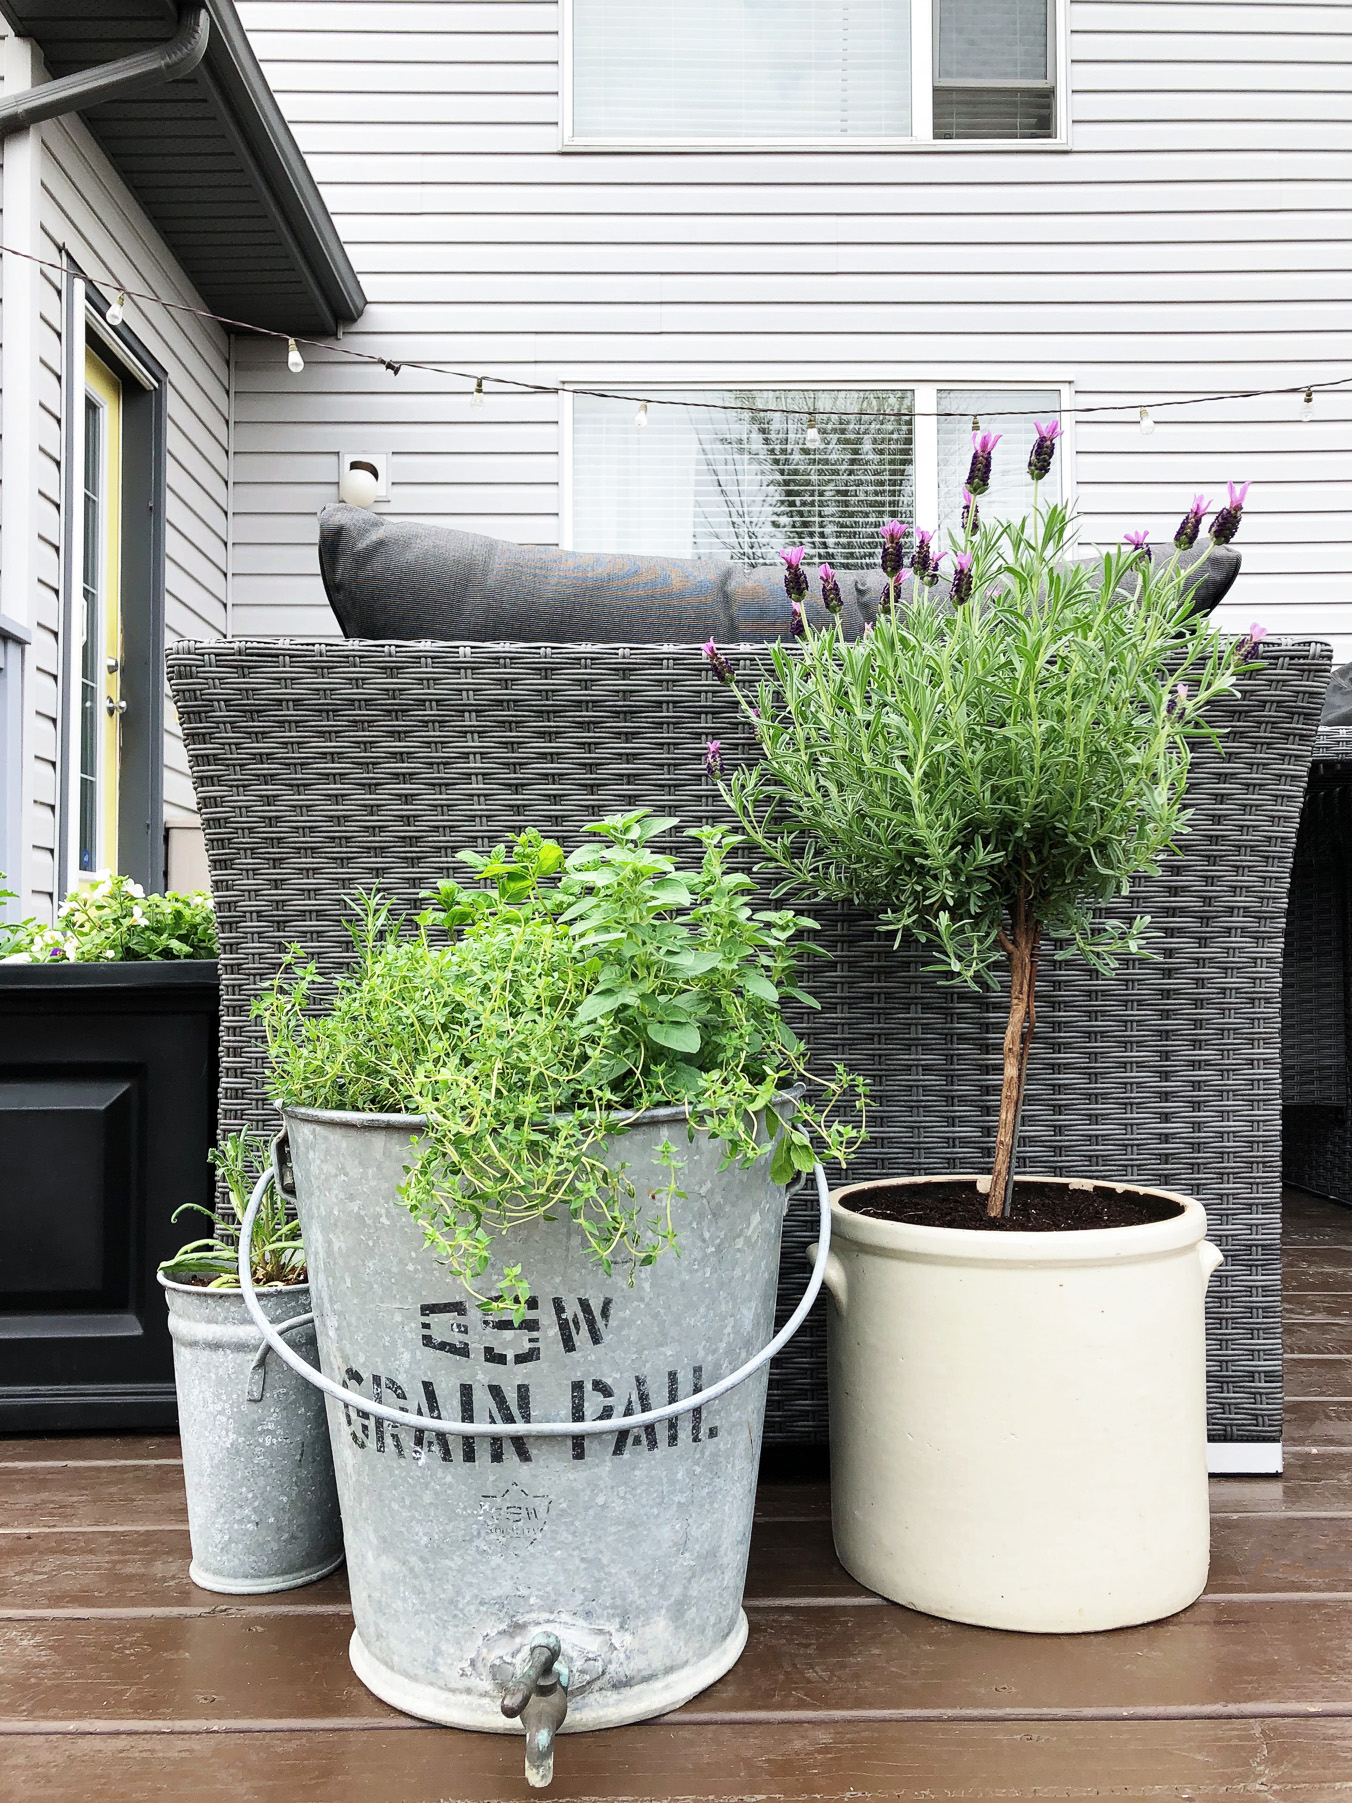 7 Inspirational Ideas for Beautiful Planters!